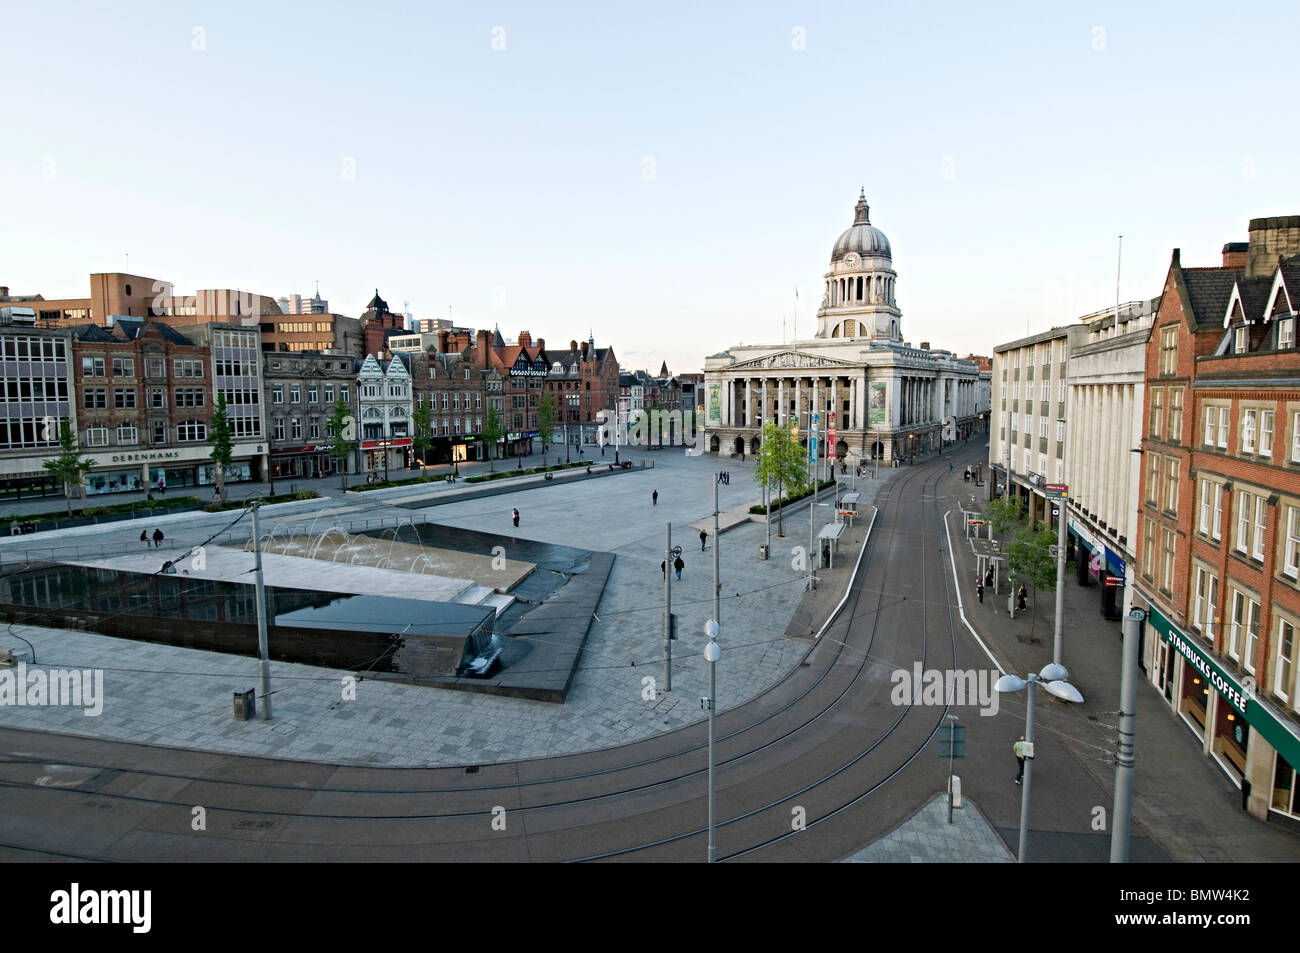 nottingham market square taken from a high angle overview - Stock Image